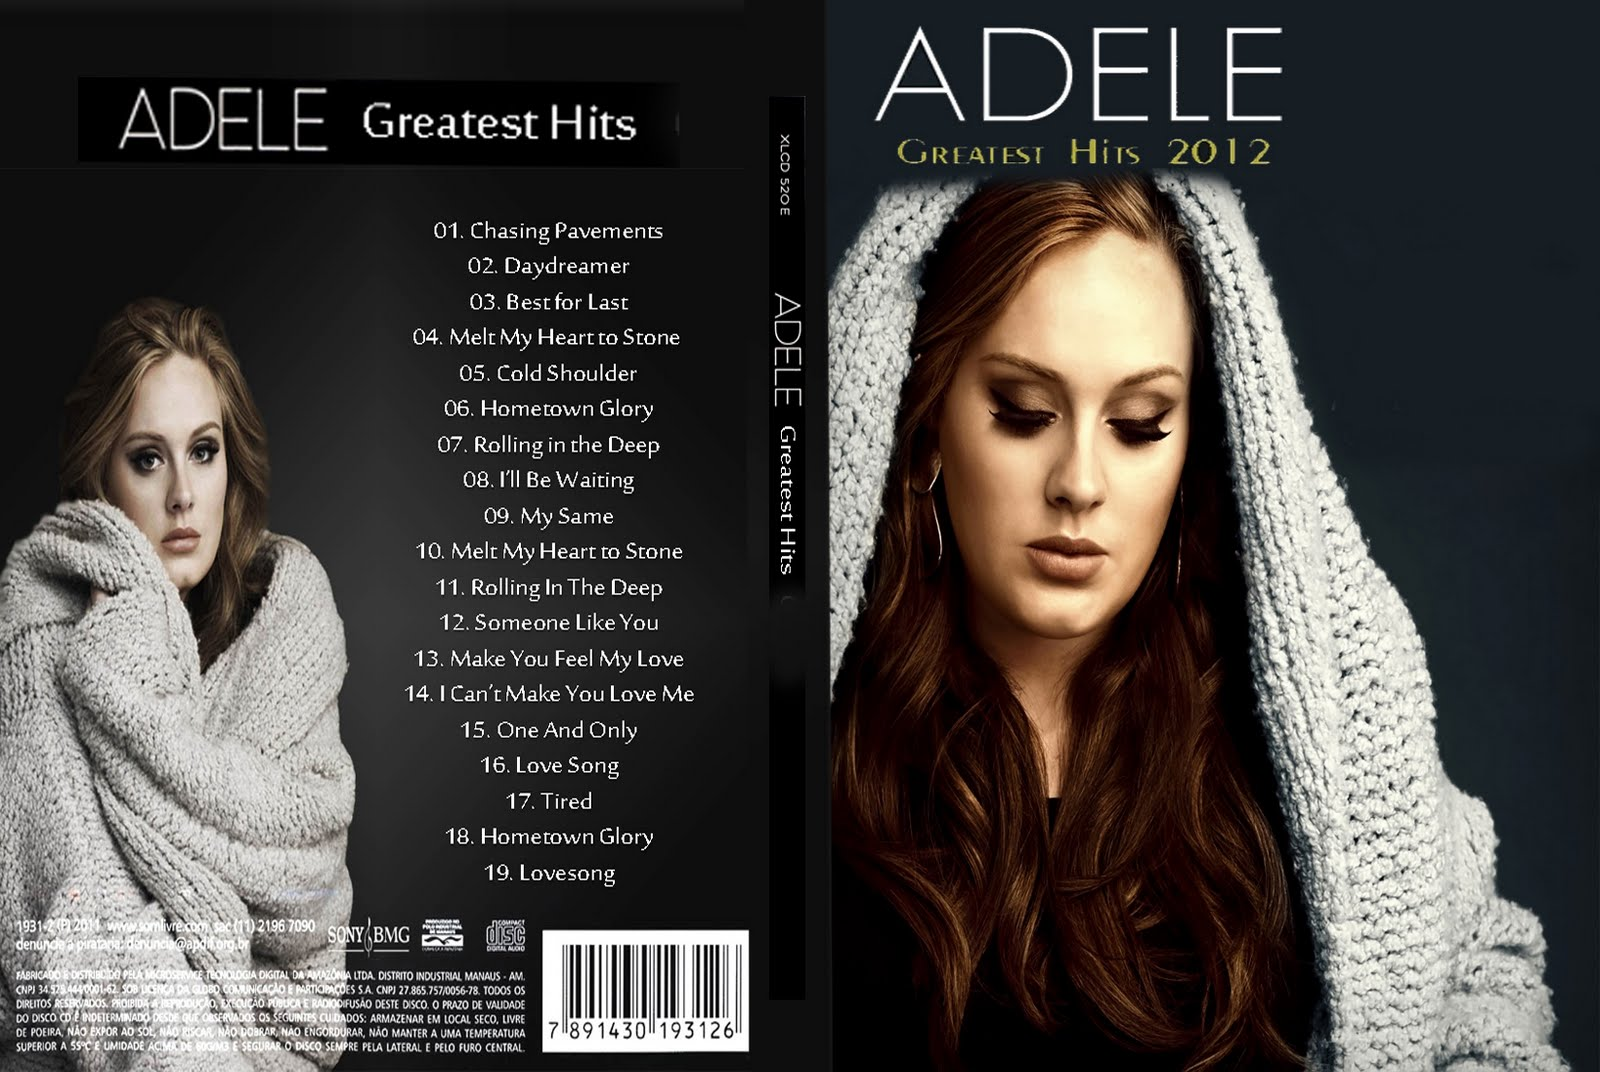 Adele Greatest Hits 2012